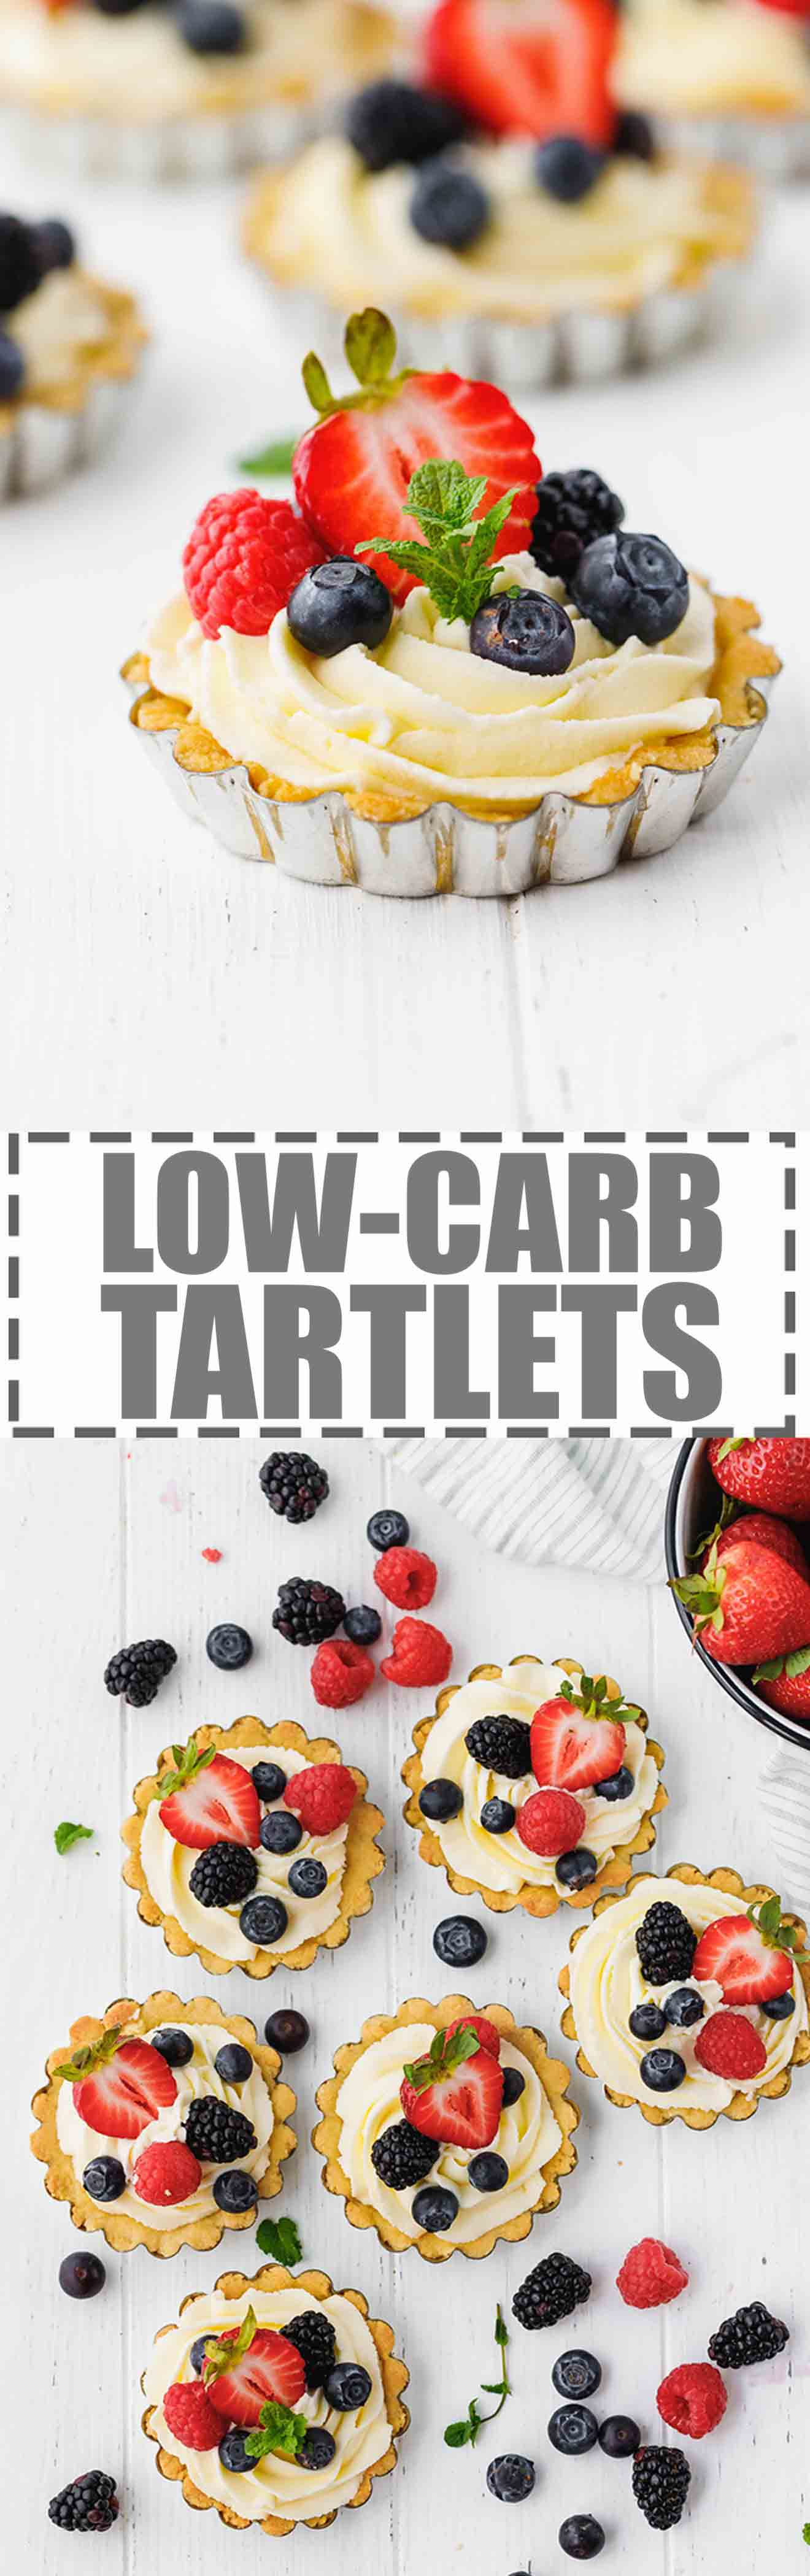 Low-Carb, Keto Tarts With Berries And Mascarpone Cream - individual desserts, made in mini tartlet pans, that are sugar and gluten-free, but at the same time very easy to make, festive. Great for parties or celebrations!#lowcarb #sugarfree #glutenfree #keto #ketodessert